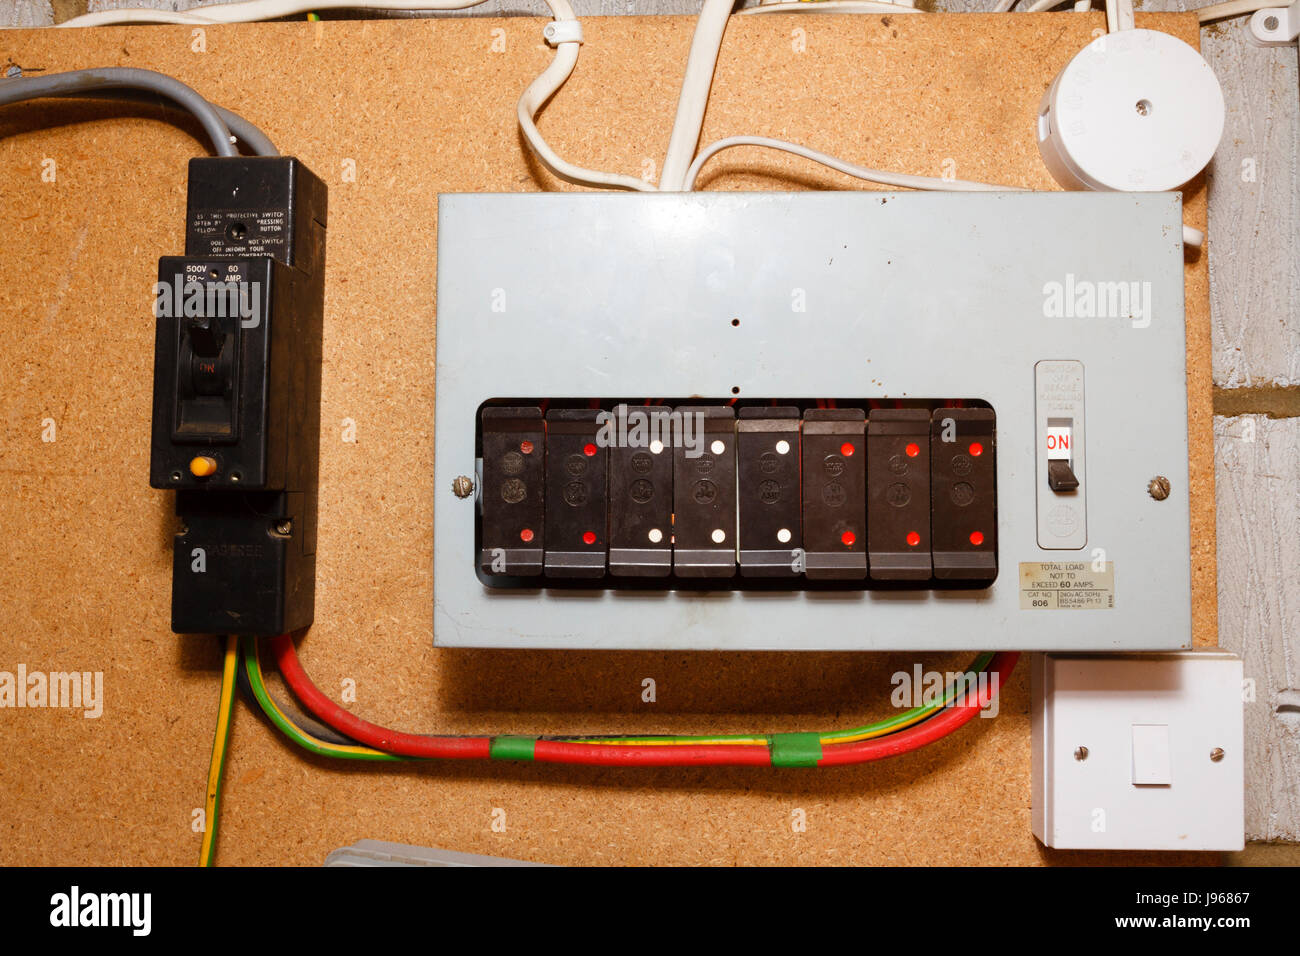 taylor fuse box wiring diagram Fuse Puller taylor fuse box wiring diagram expertstaylor fuse box wiring diagram old murray fuse box wiring diagrams